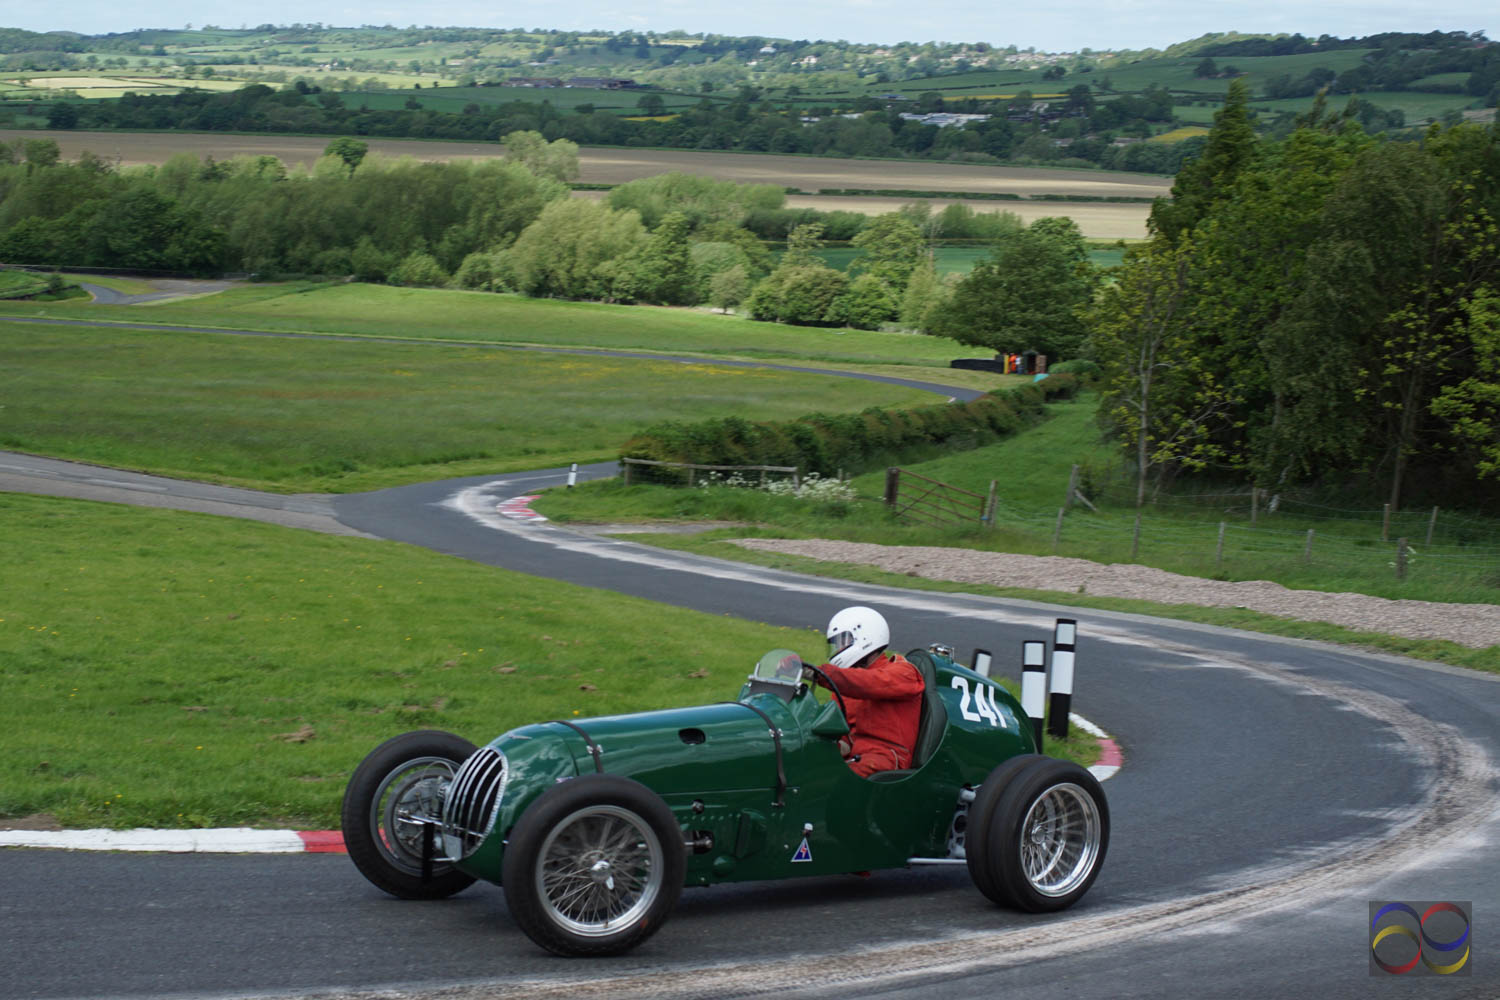 Yorkshire and the Scottish Borders to host two great Vintage motoring opportunities for VSCC Members this weekend cover